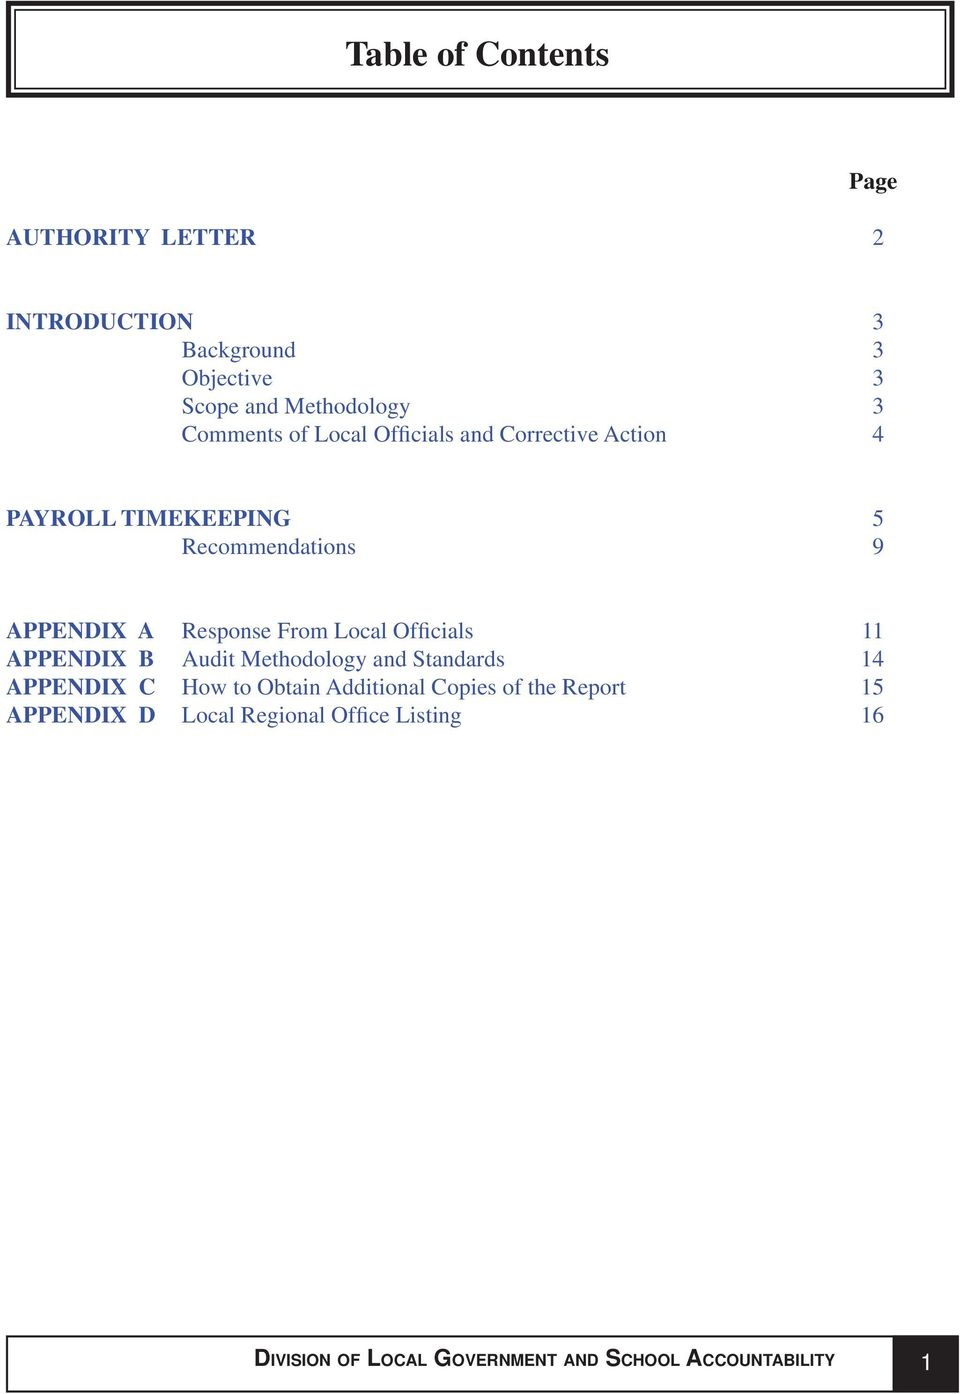 From Local Officials 11 APPENDIX B Audit Methodology and Standards 14 APPENDIX C How to Obtain Additional Copies